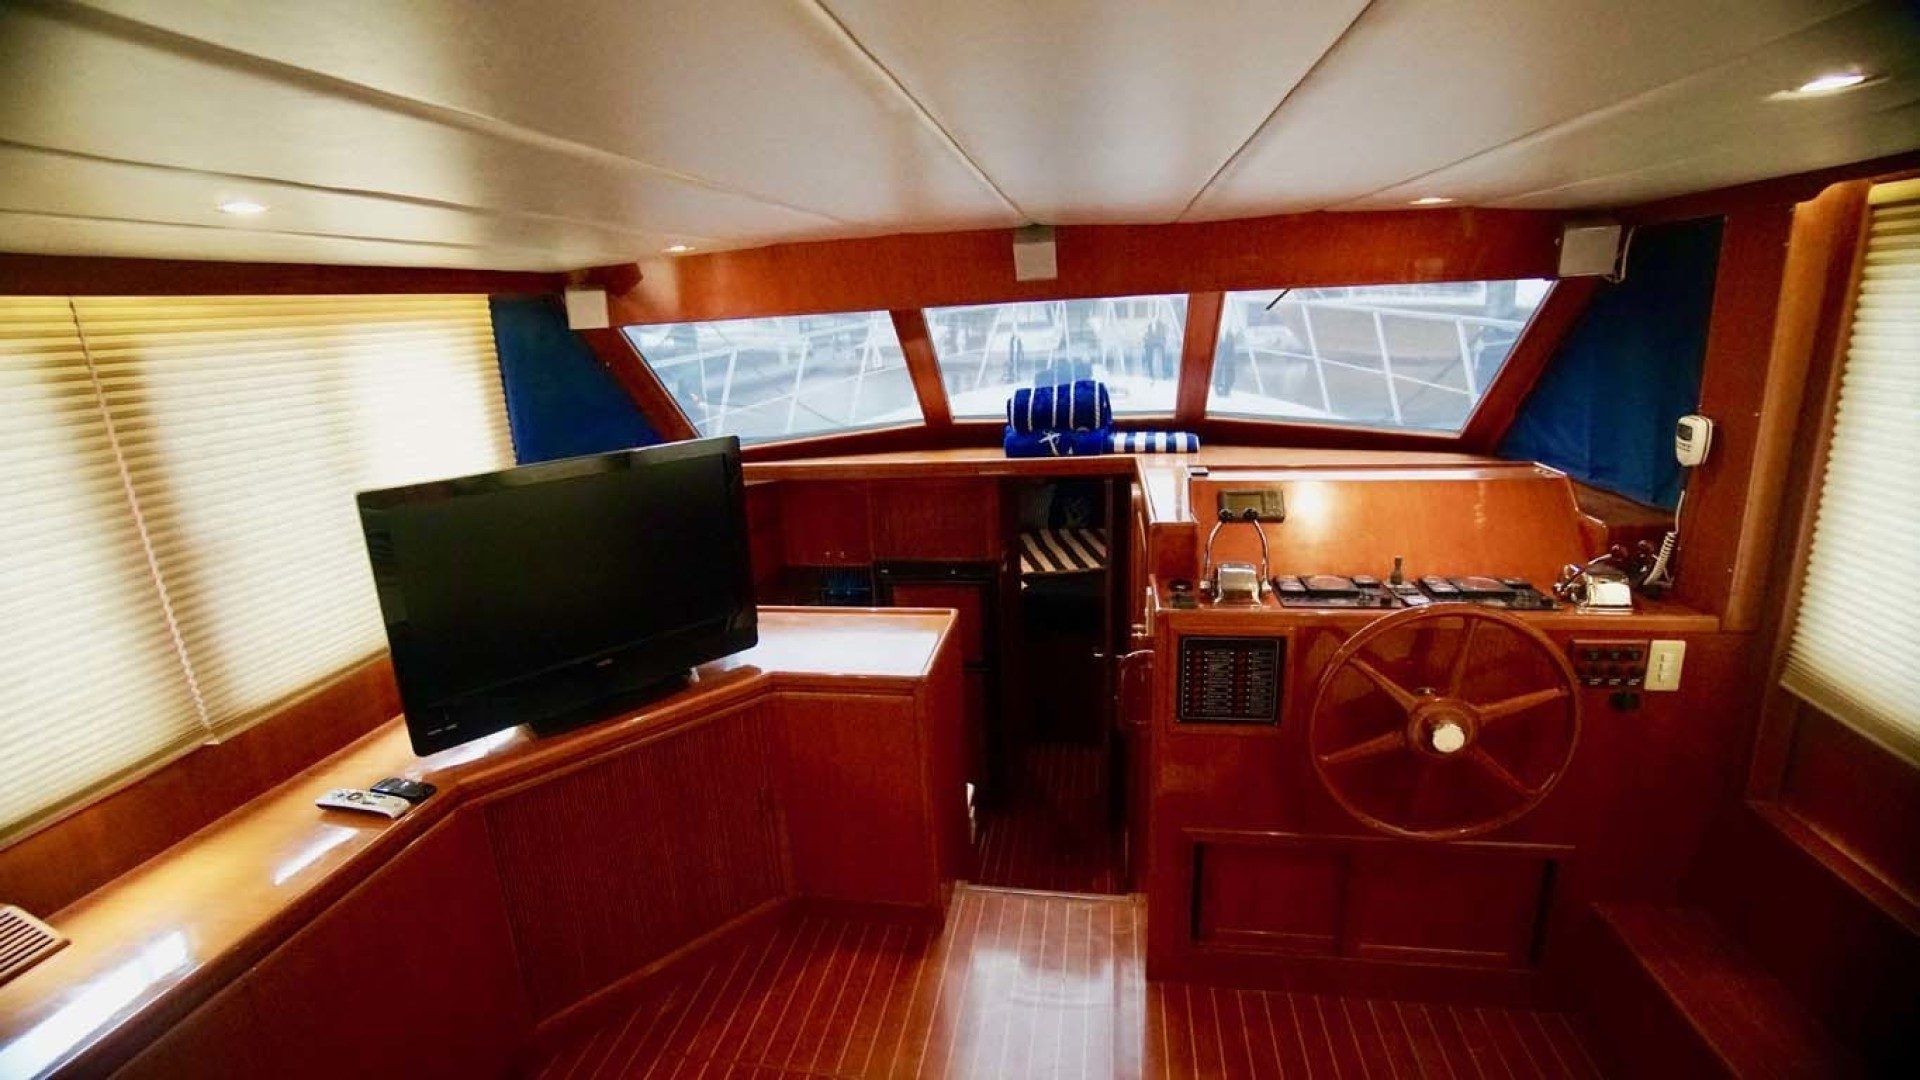 Novatec-48 Fast Trawler 2003-SINE DIE II Destin-Florida-United States-Salon Looking Forward-1360615 | Thumbnail